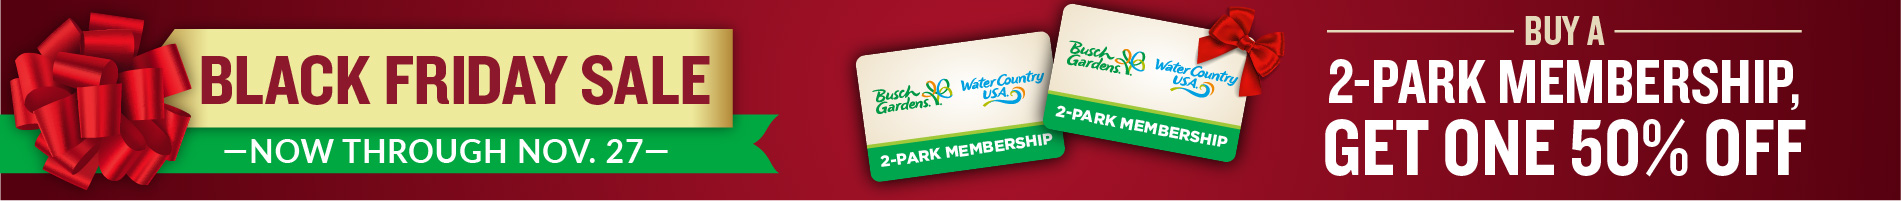 Busch Gardens Williamsburg & Water Country USA Black Friday Sale